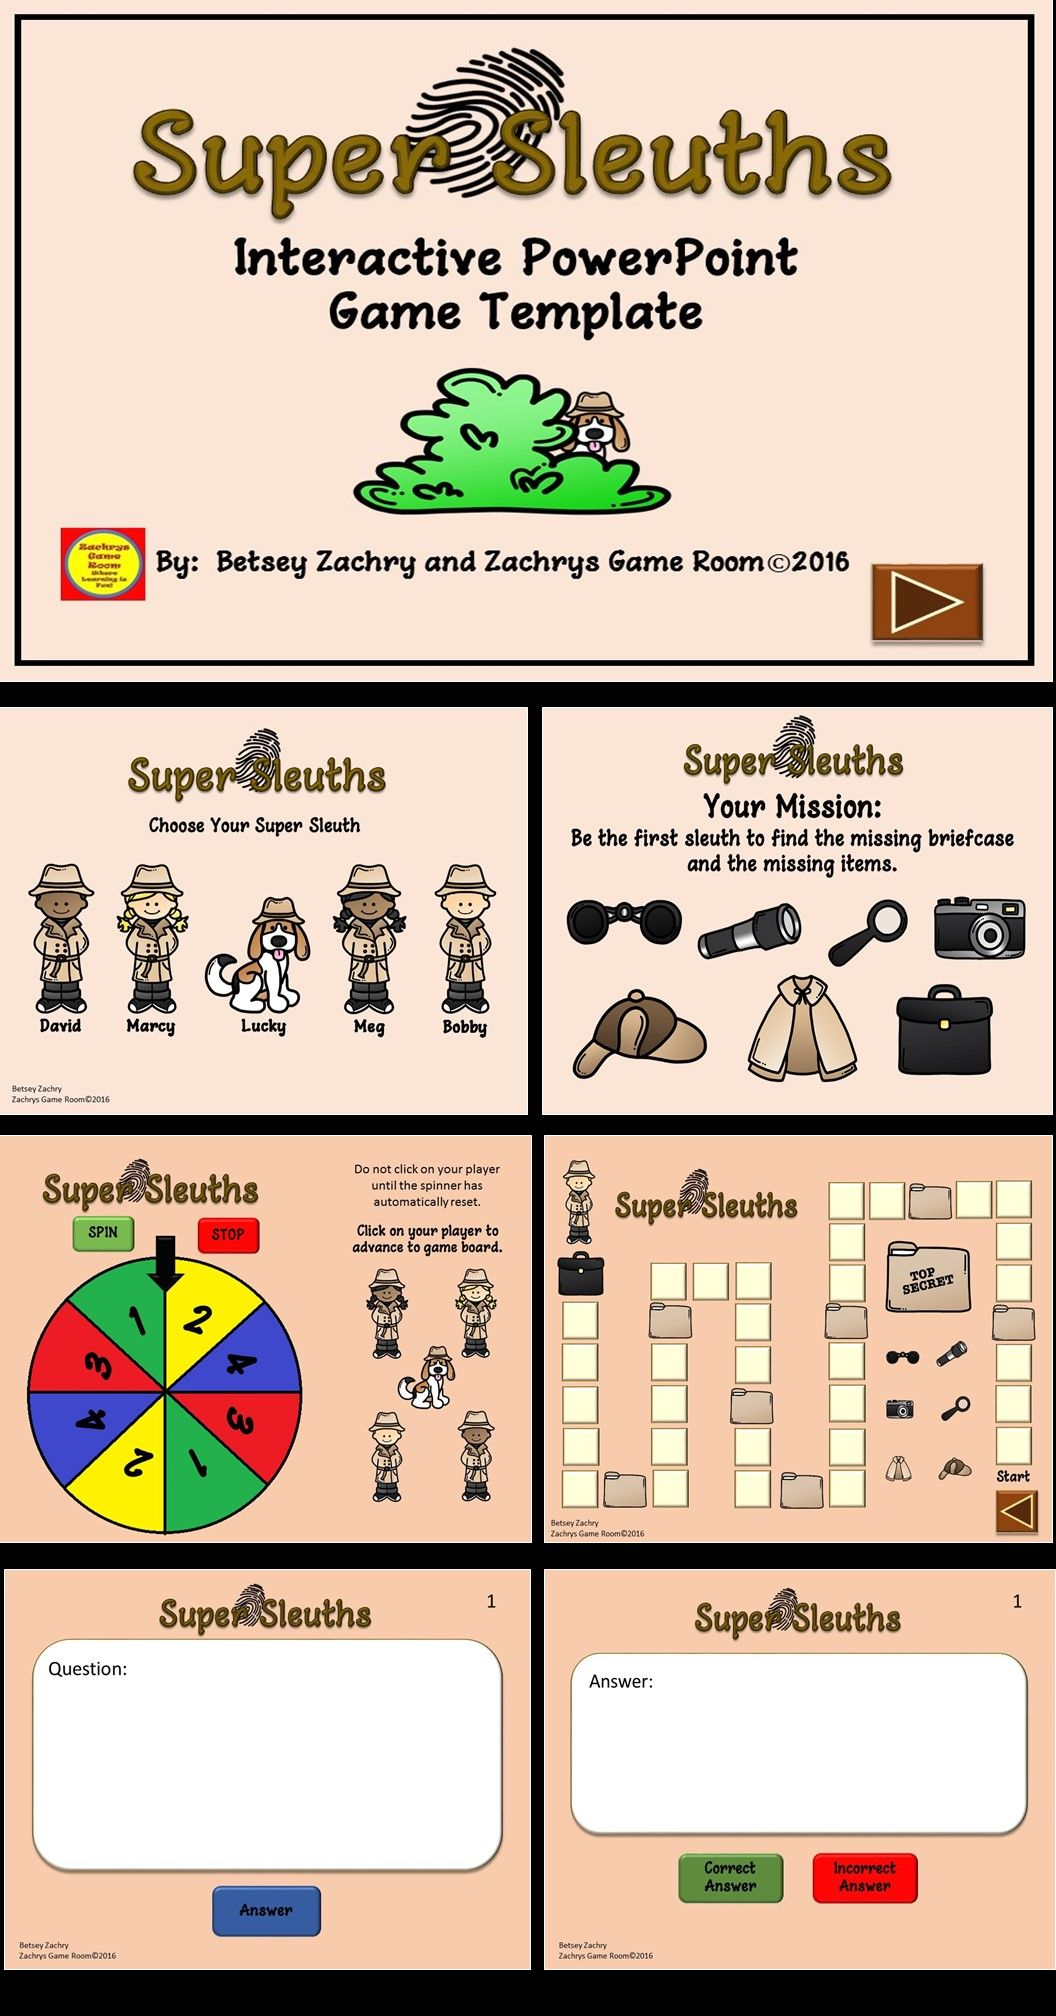 powerpoint game template super sleuth interactive game reading